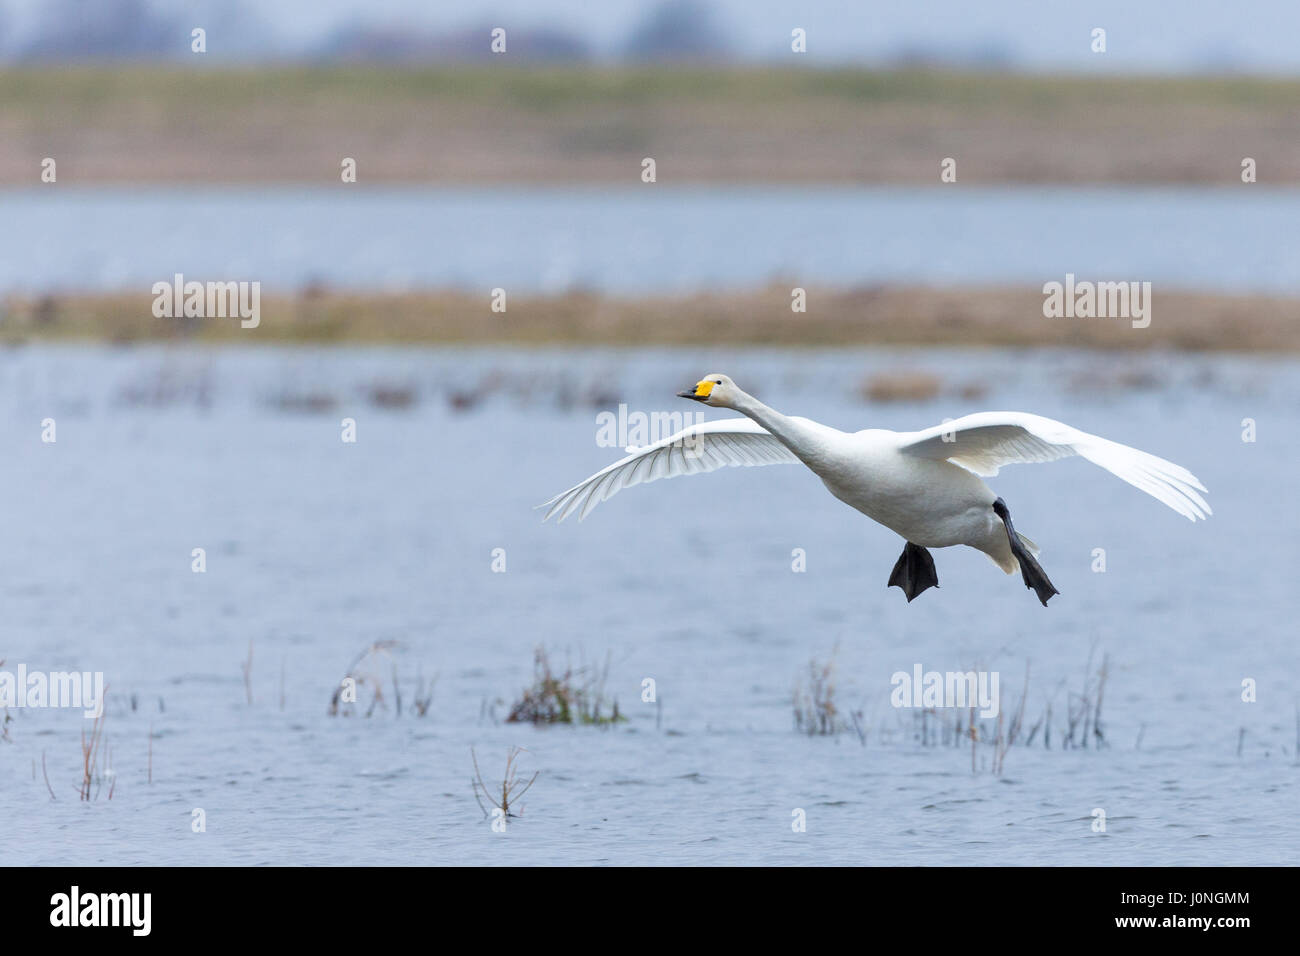 Whooper Swan, Cygnus cygnus, in flight with wings spread wide about to land at Welney Wetland Centre, Norfolk, UK - Stock Image